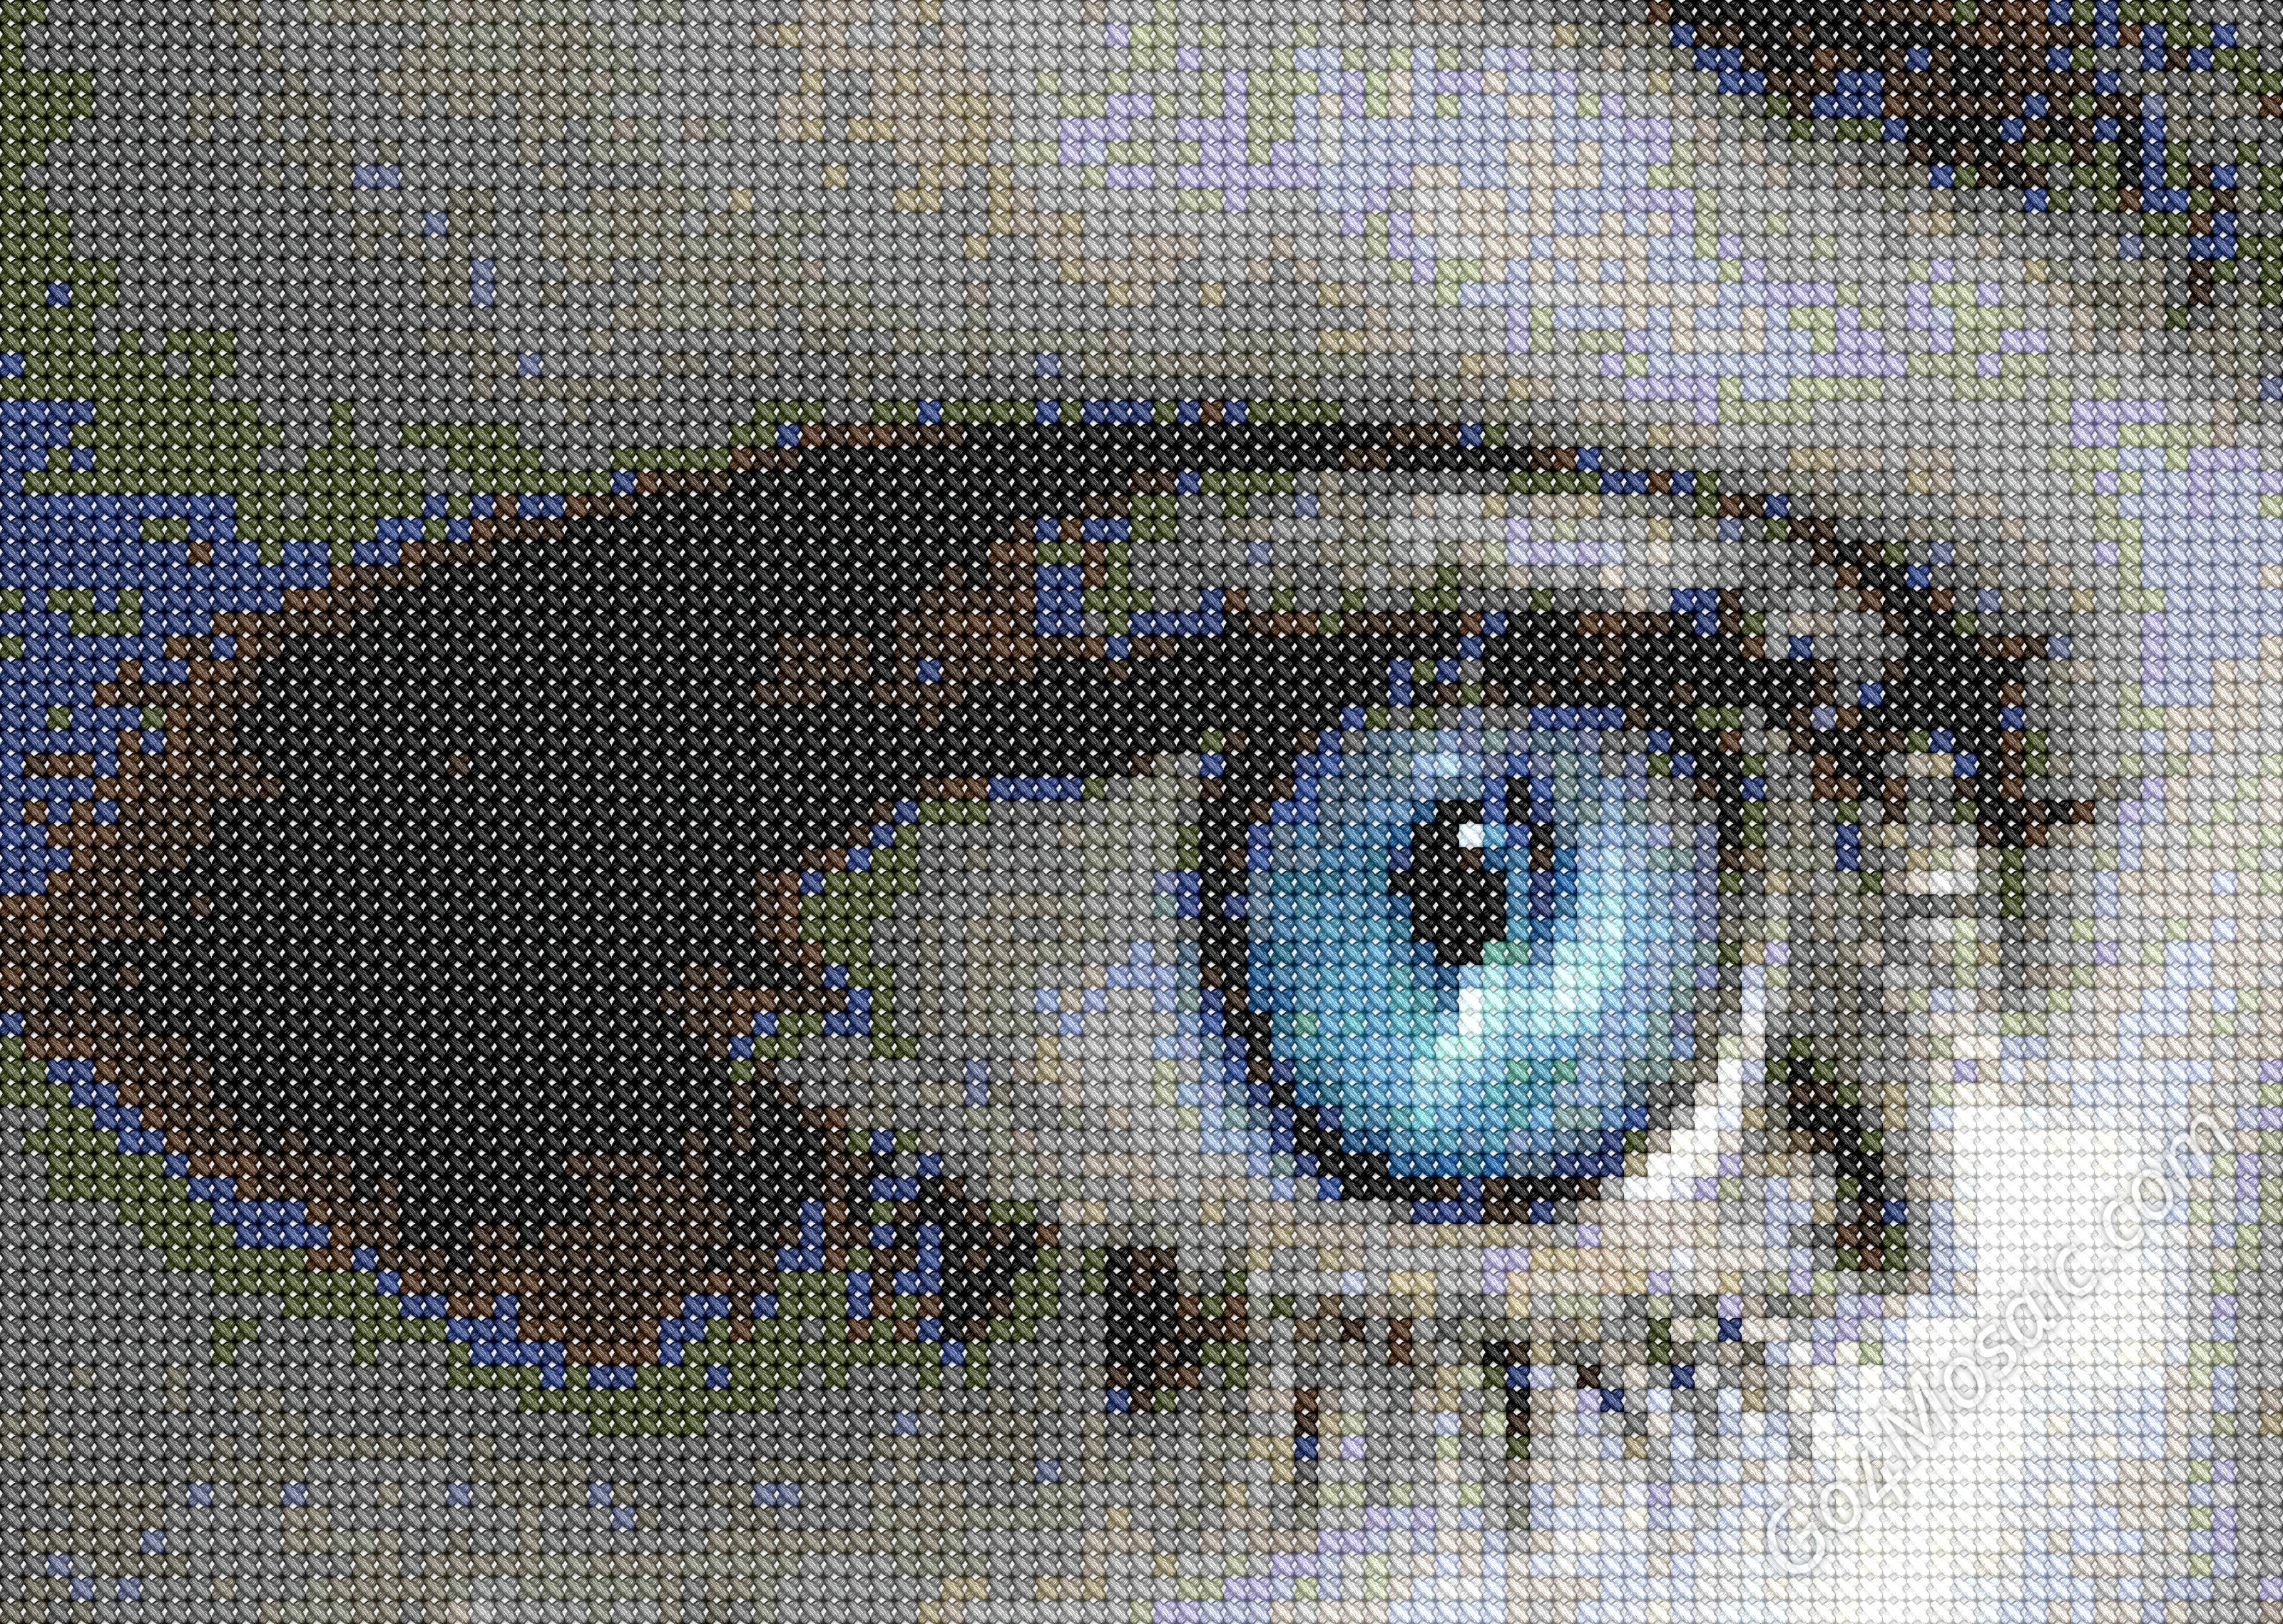 Eye mosaic from cross-stitched